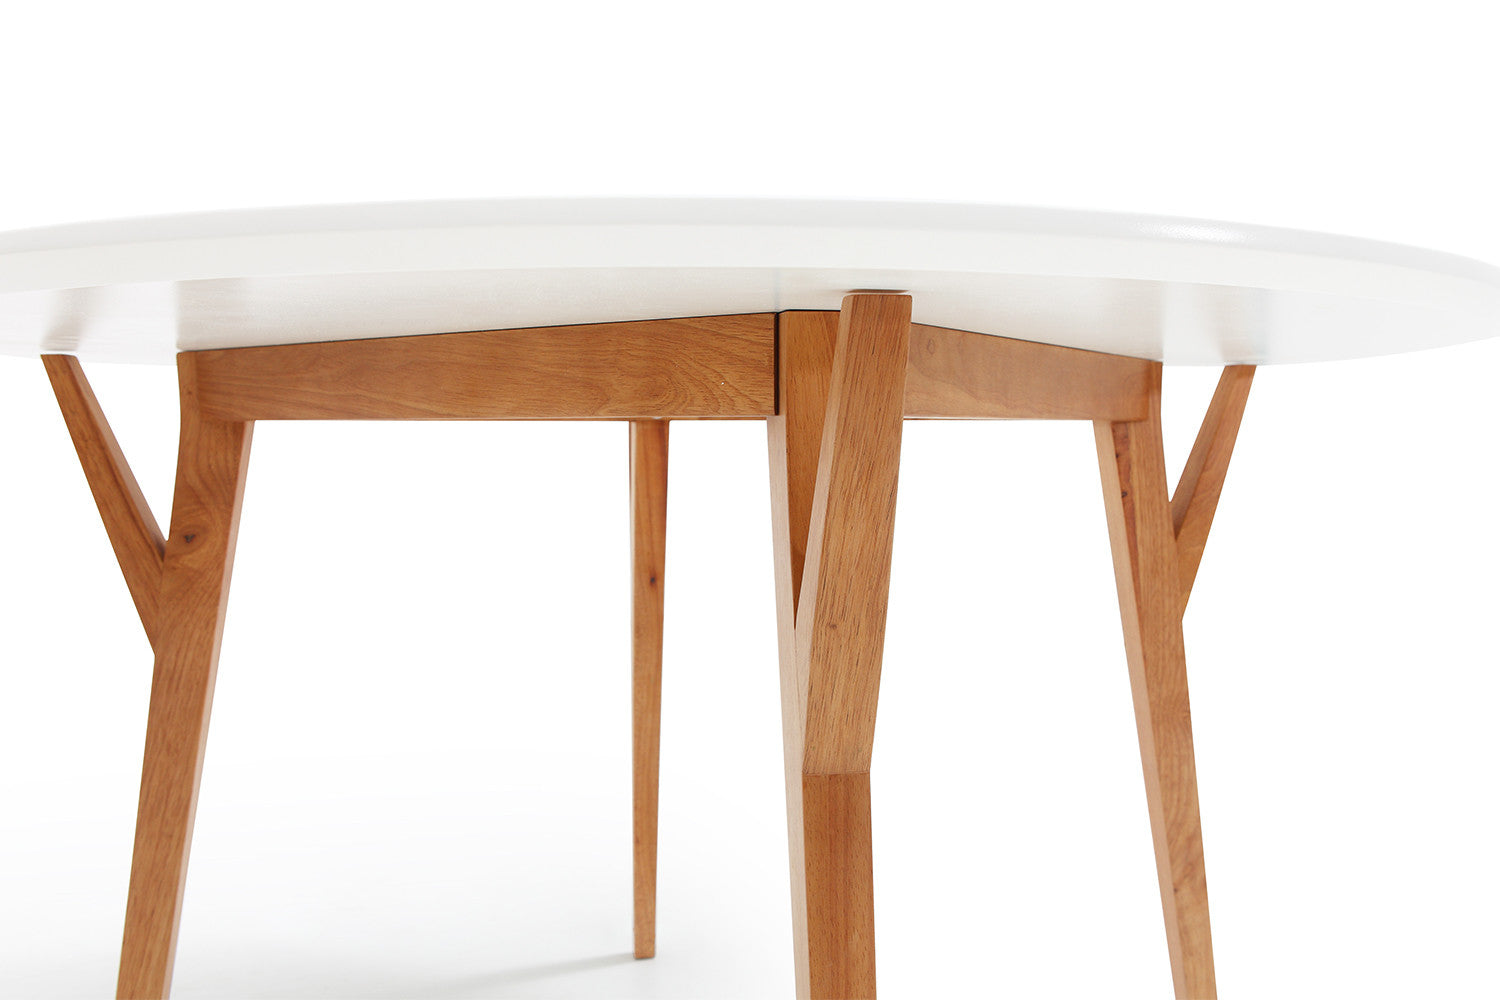 Table de salle manger ronde design scandinave moesa for Table ronde pour salle a manger